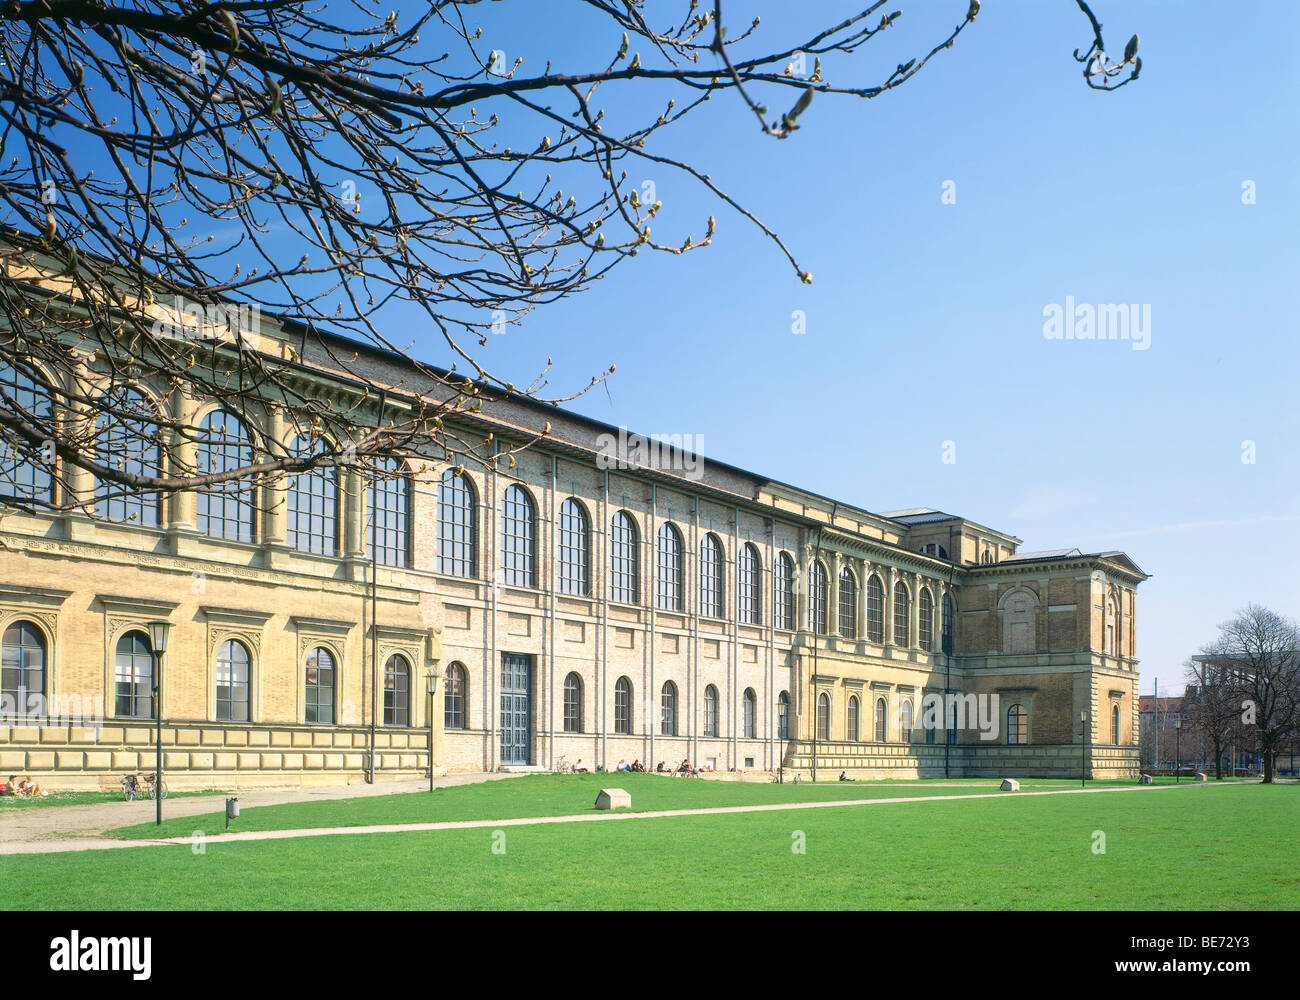 Alte Pinakothek, built 1826 to 1836 by L. von Klenze, Munich, Bavaria, Germany, Europe - Stock Image